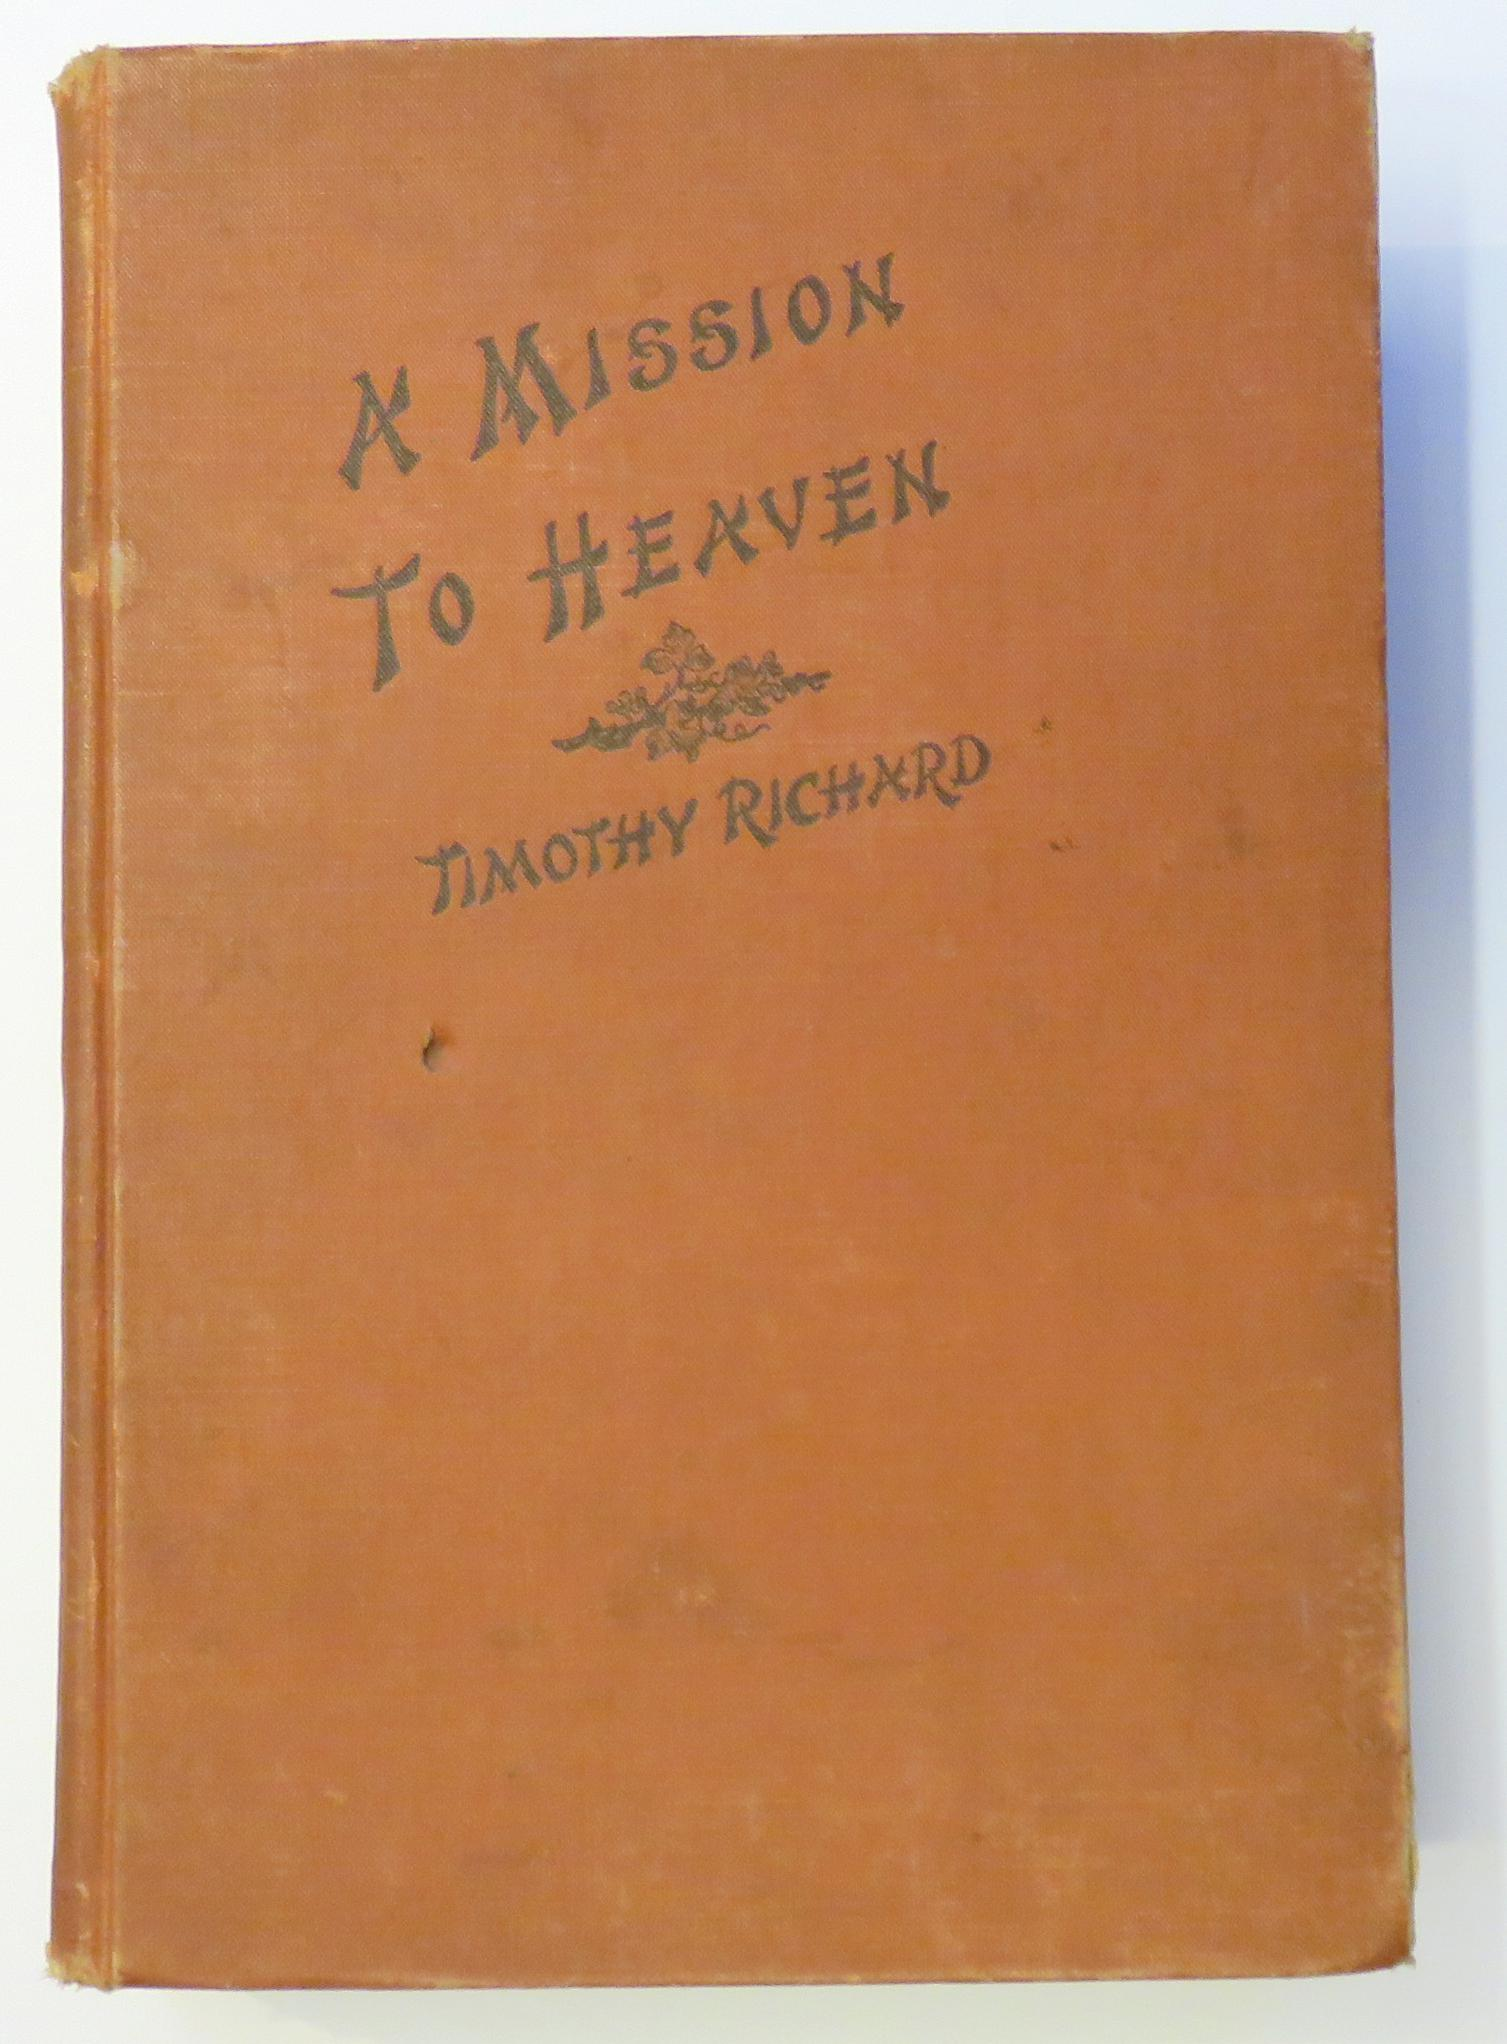 A Mission To Heaven A Great Chinese Epic and Allegory